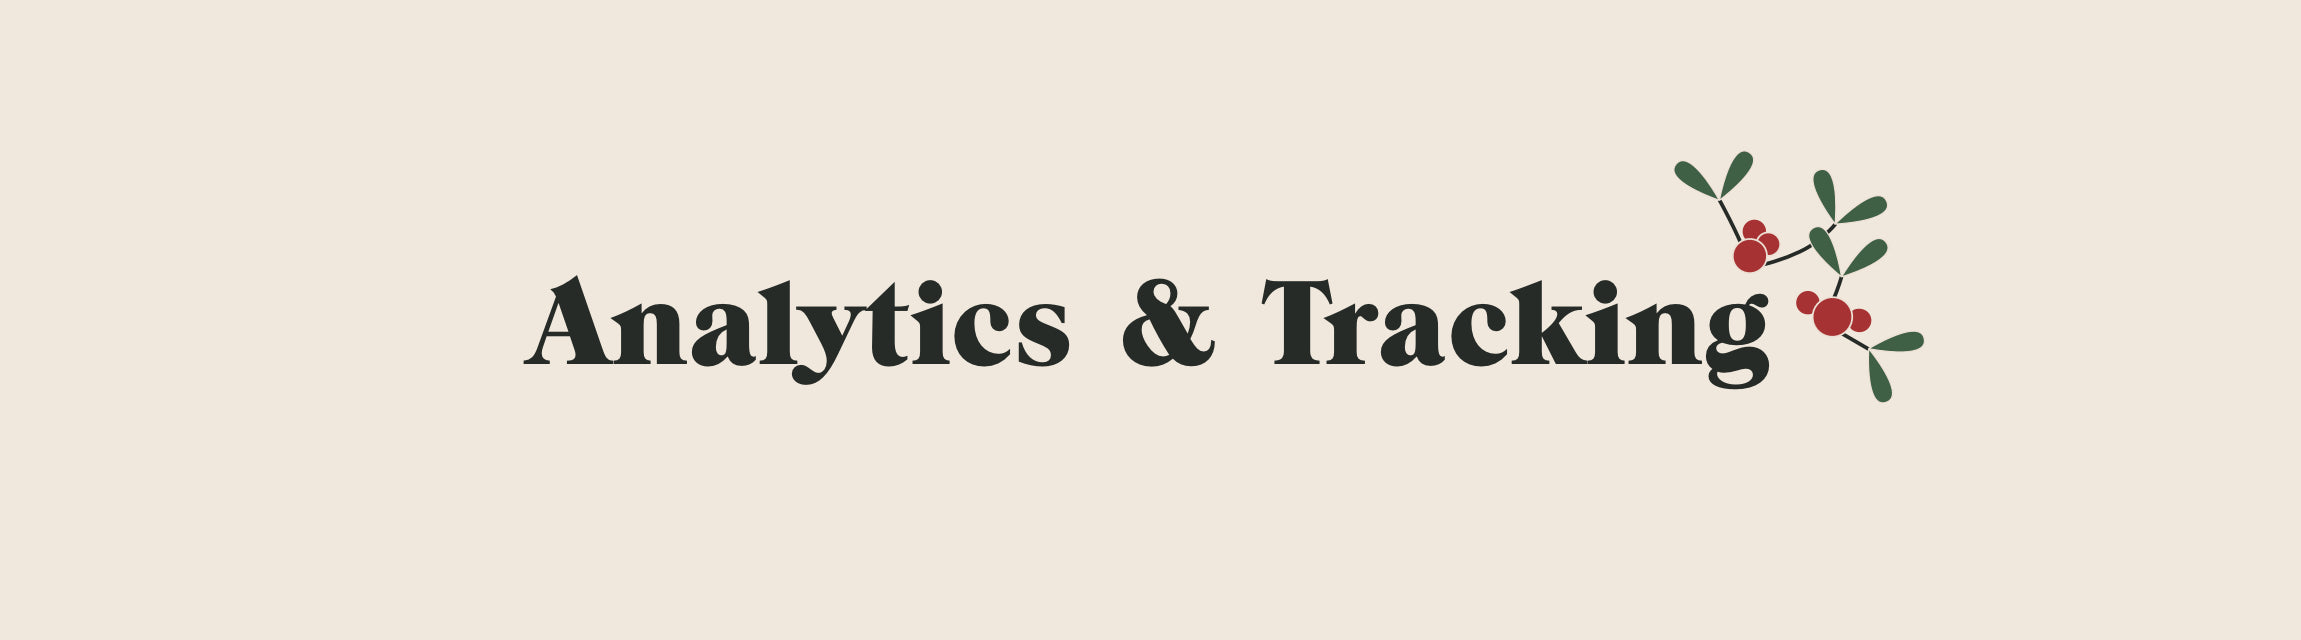 Analytics & Tracking title with mistletoe icon